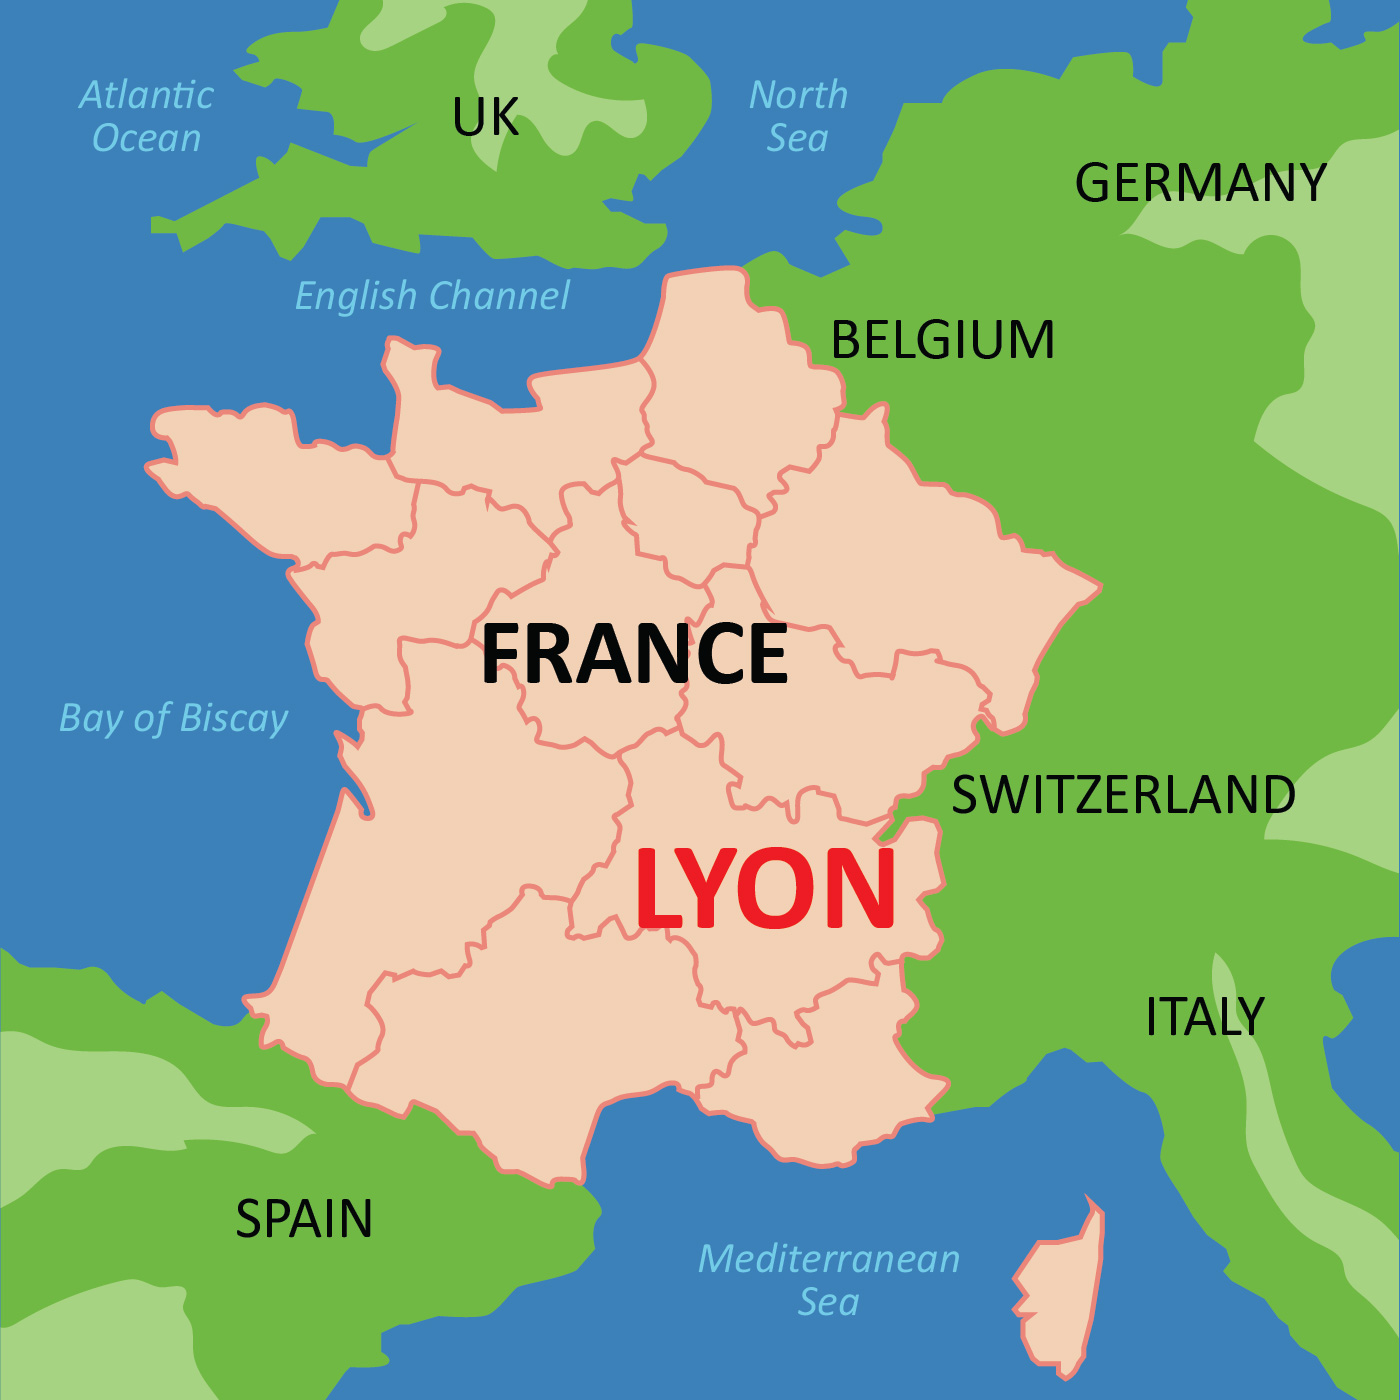 Lyon Map - Download Free Vectors, Clipart Graphics & Vector Art